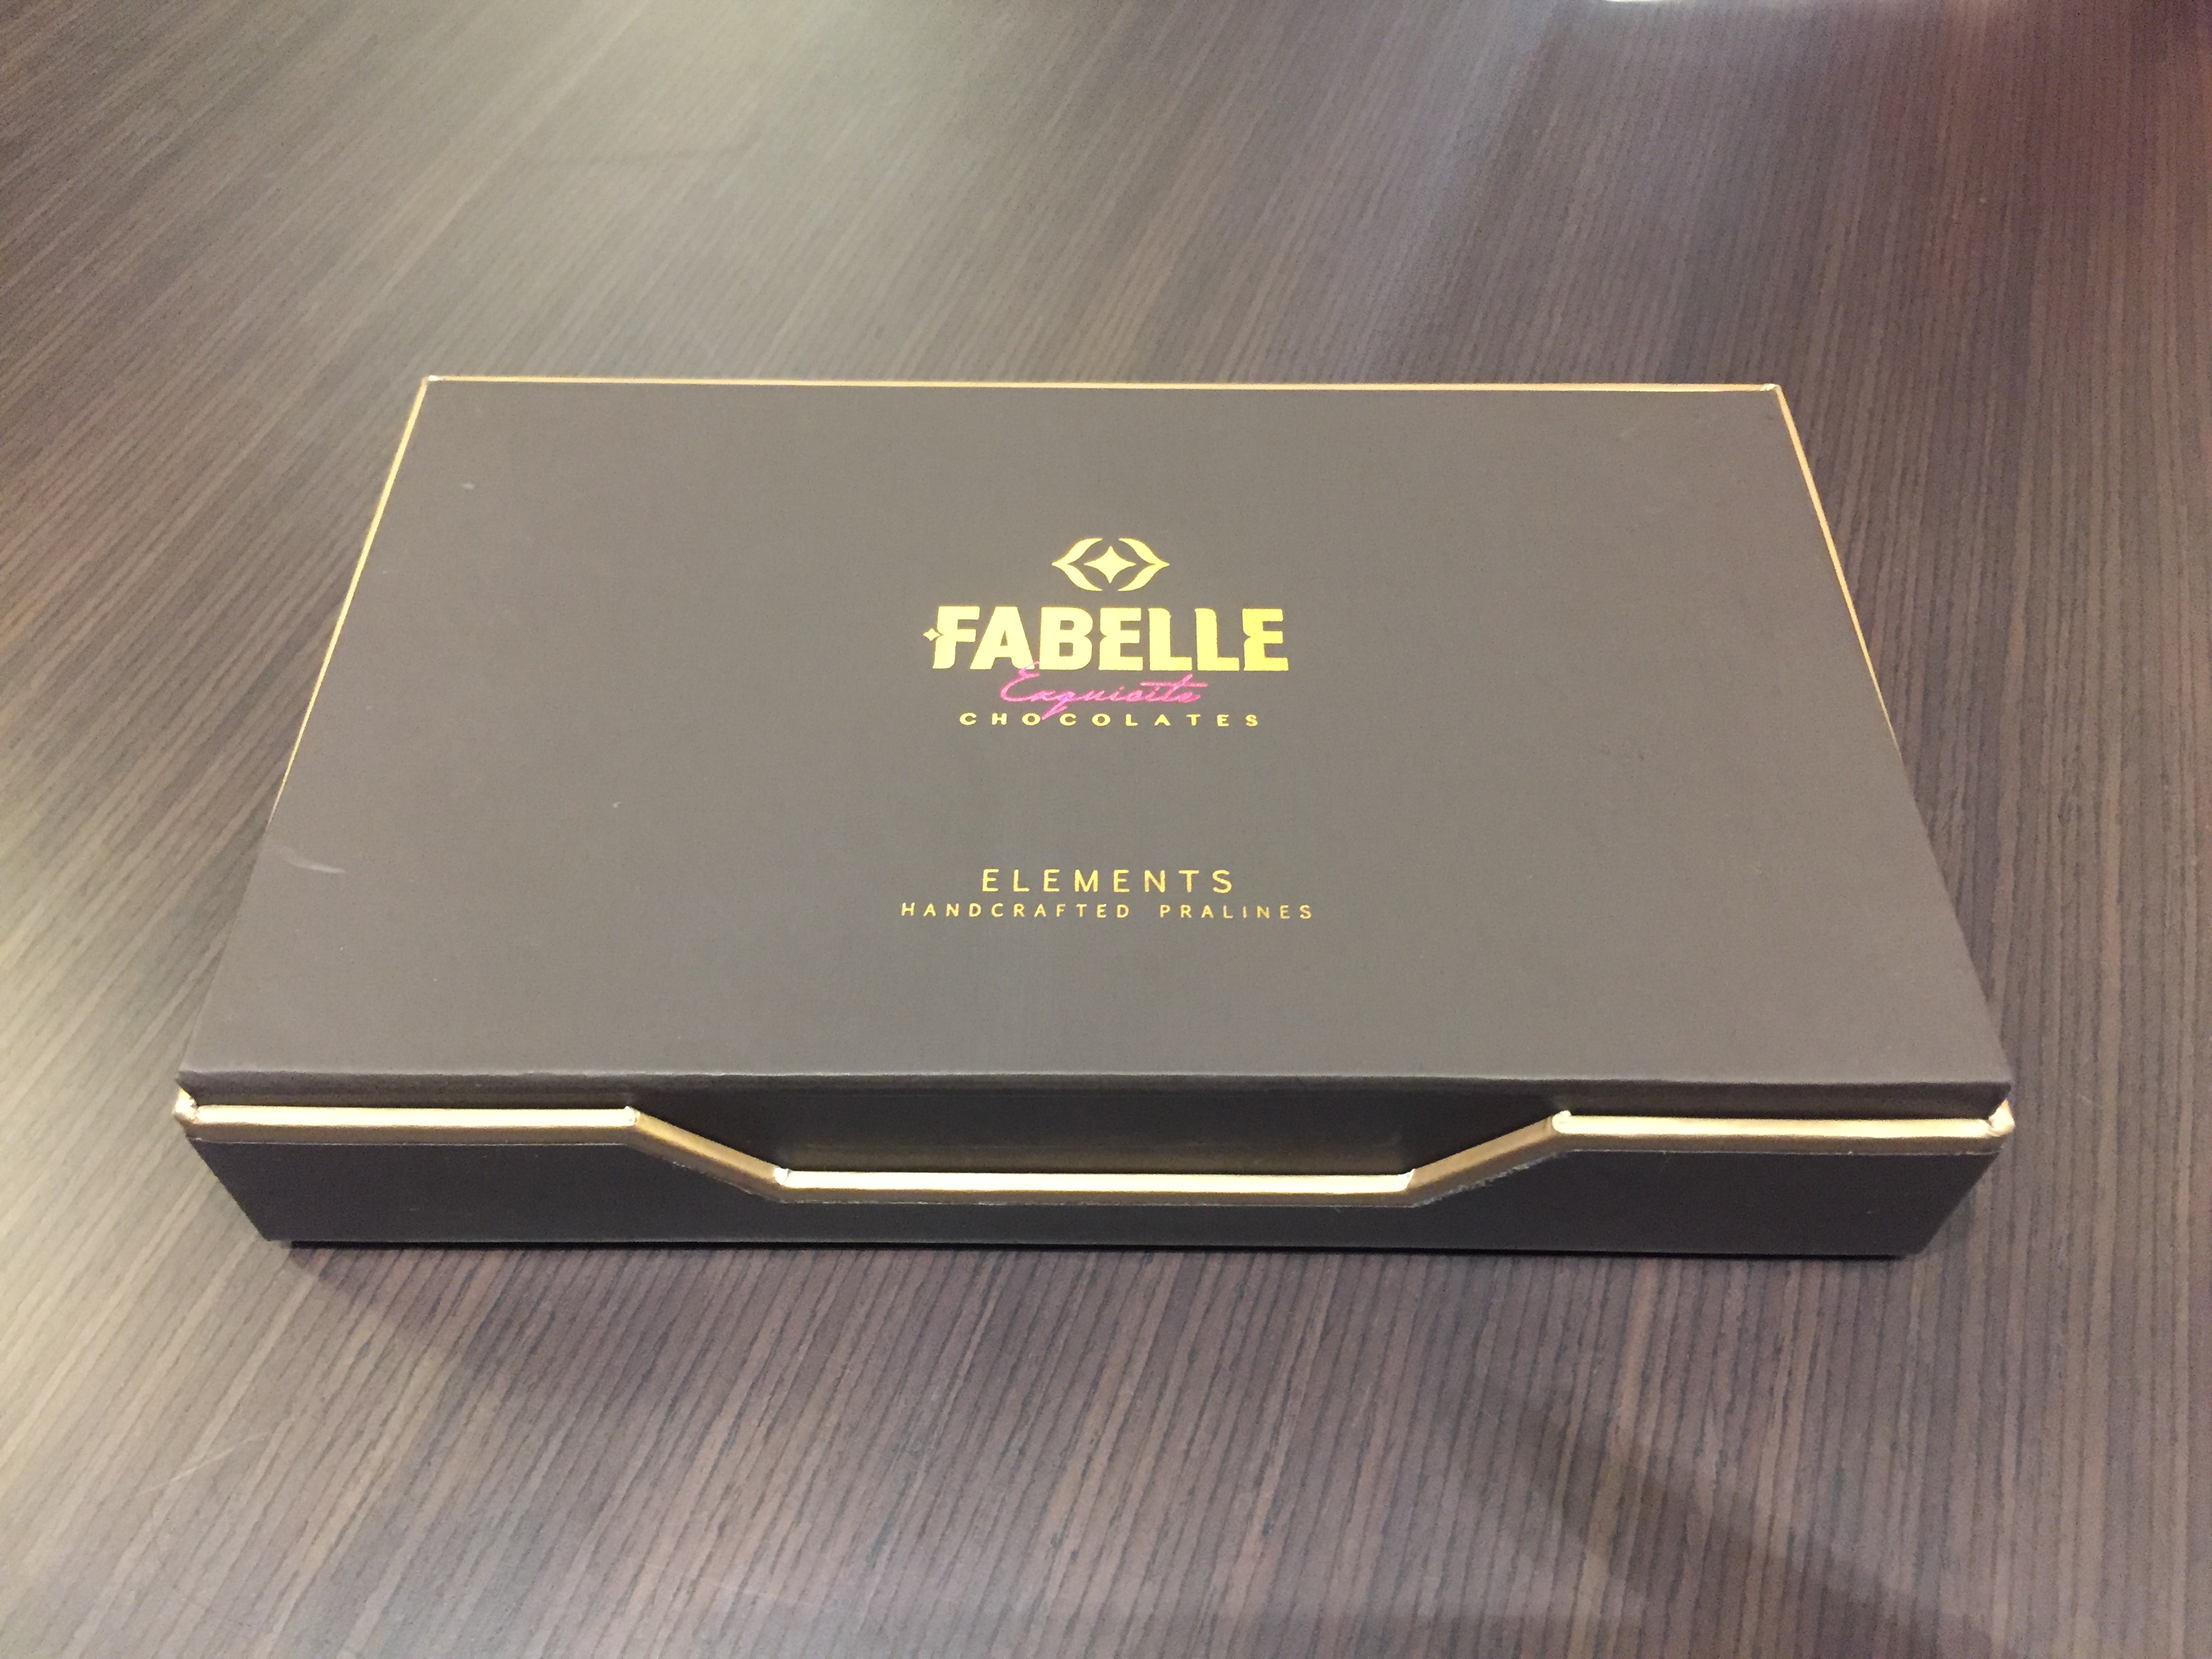 Fabelle-ous Chocolates from ITC !